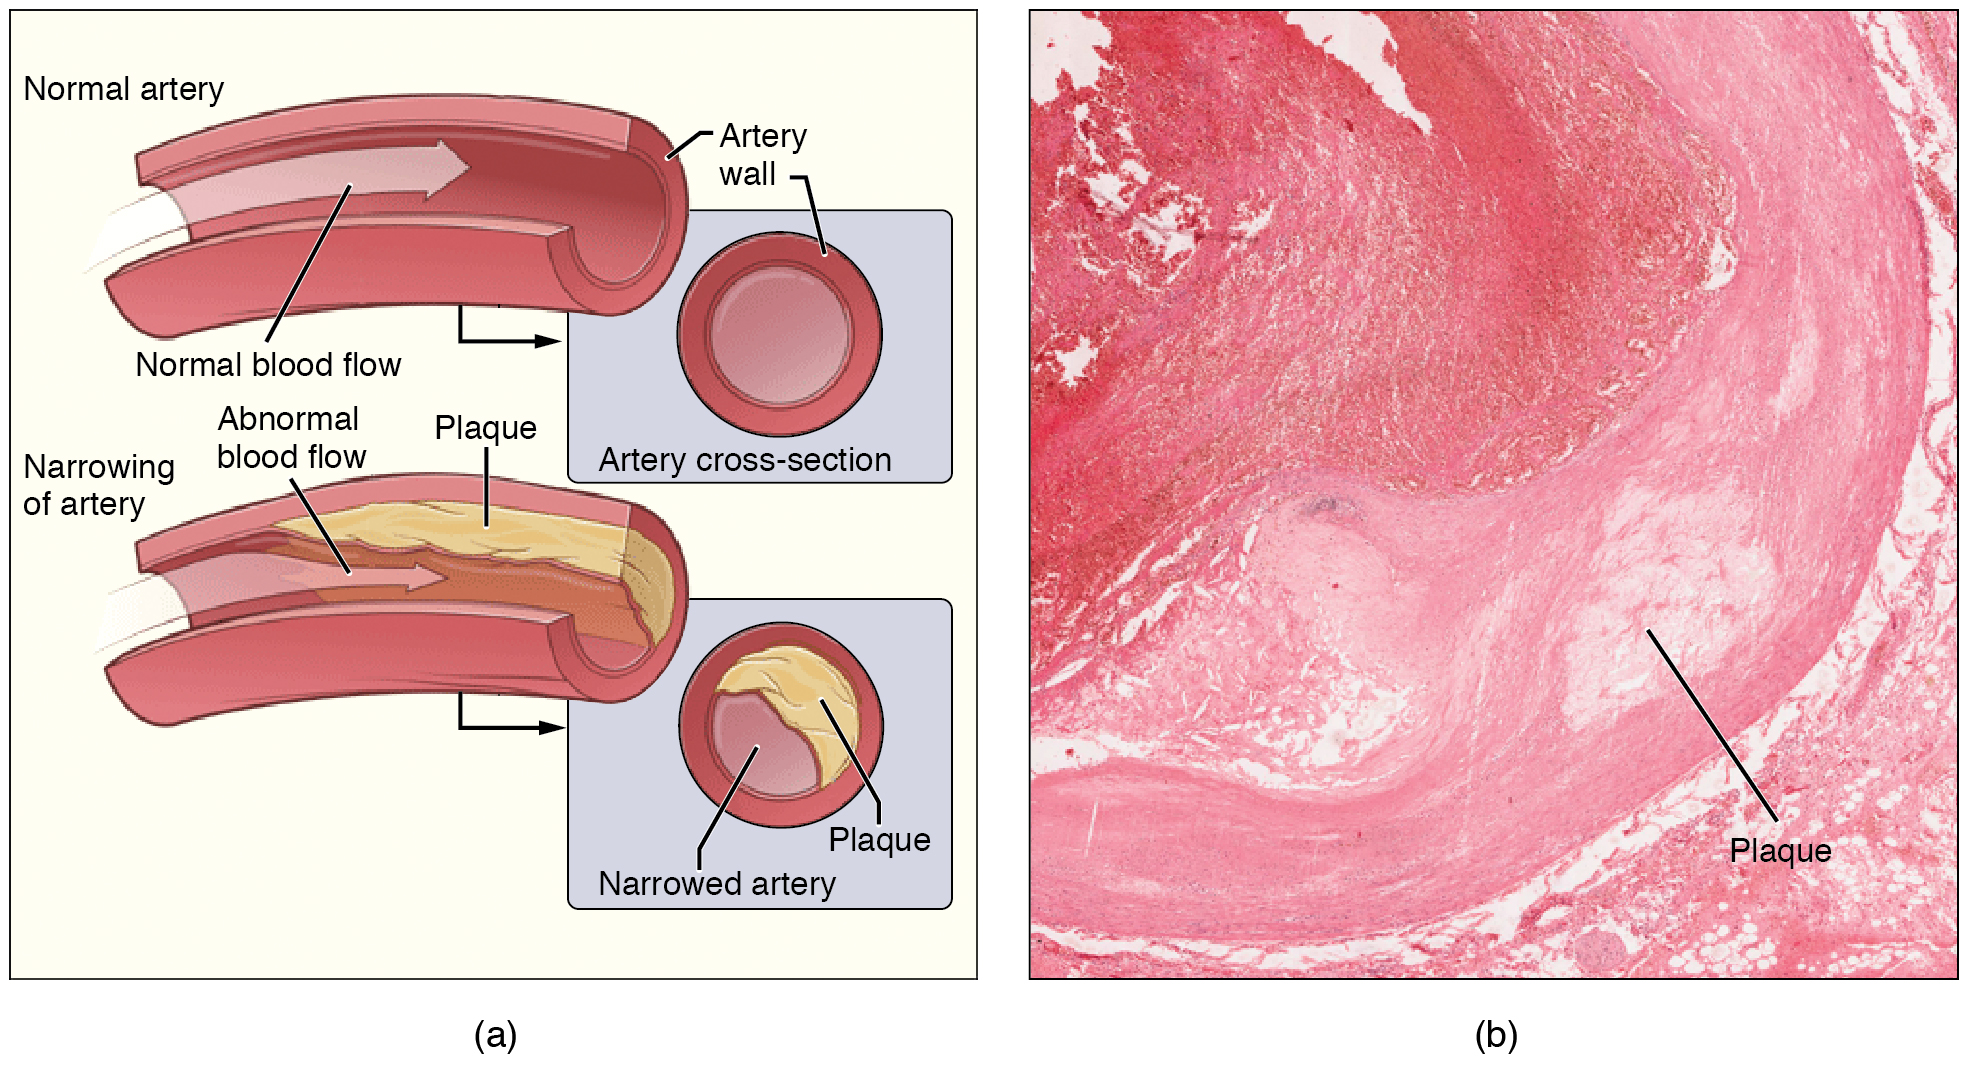 The left panel shows the cross-section of a normal and a narrowed artery. The right panel shows a micrograph of an artery with plaque in it.